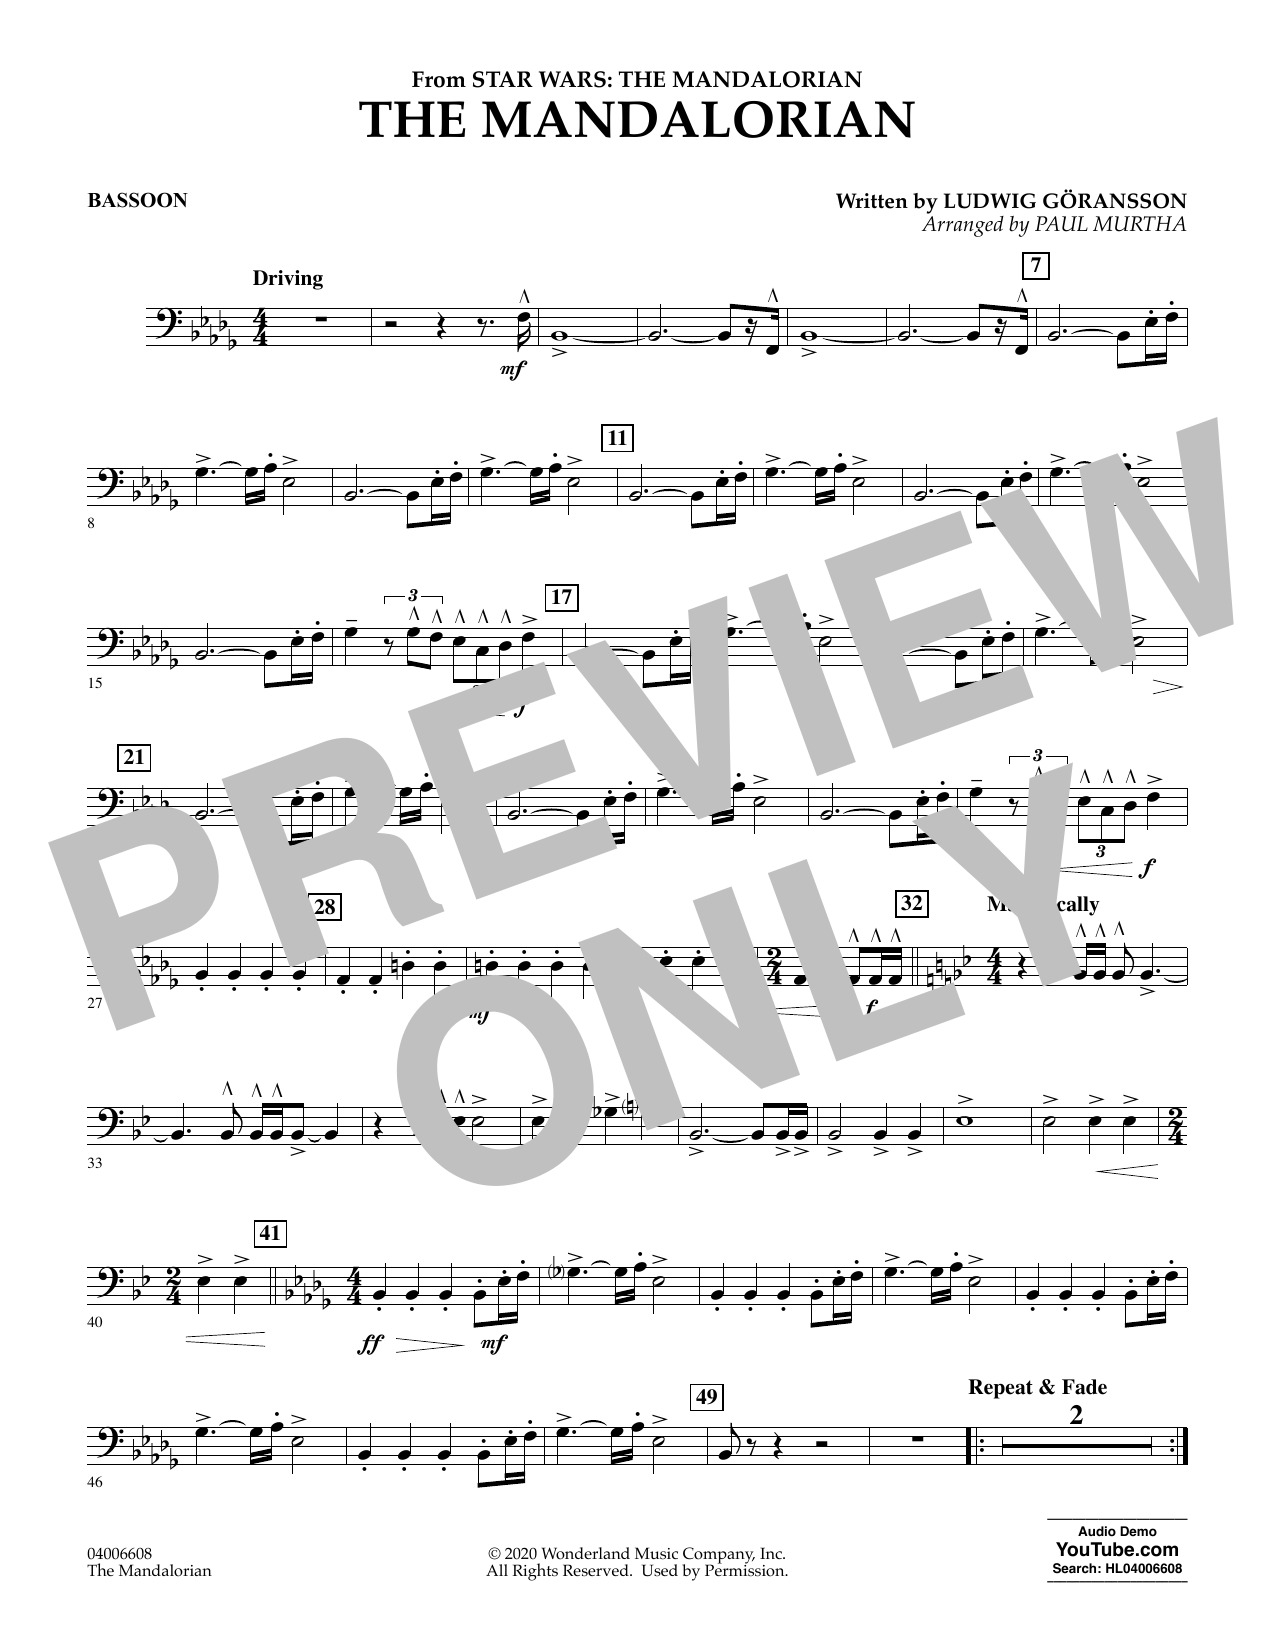 Ludwig Goransson The Mandalorian (from Star Wars: The Mandalorian) (arr. Paul Murtha) - Bassoon sheet music notes and chords. Download Printable PDF.